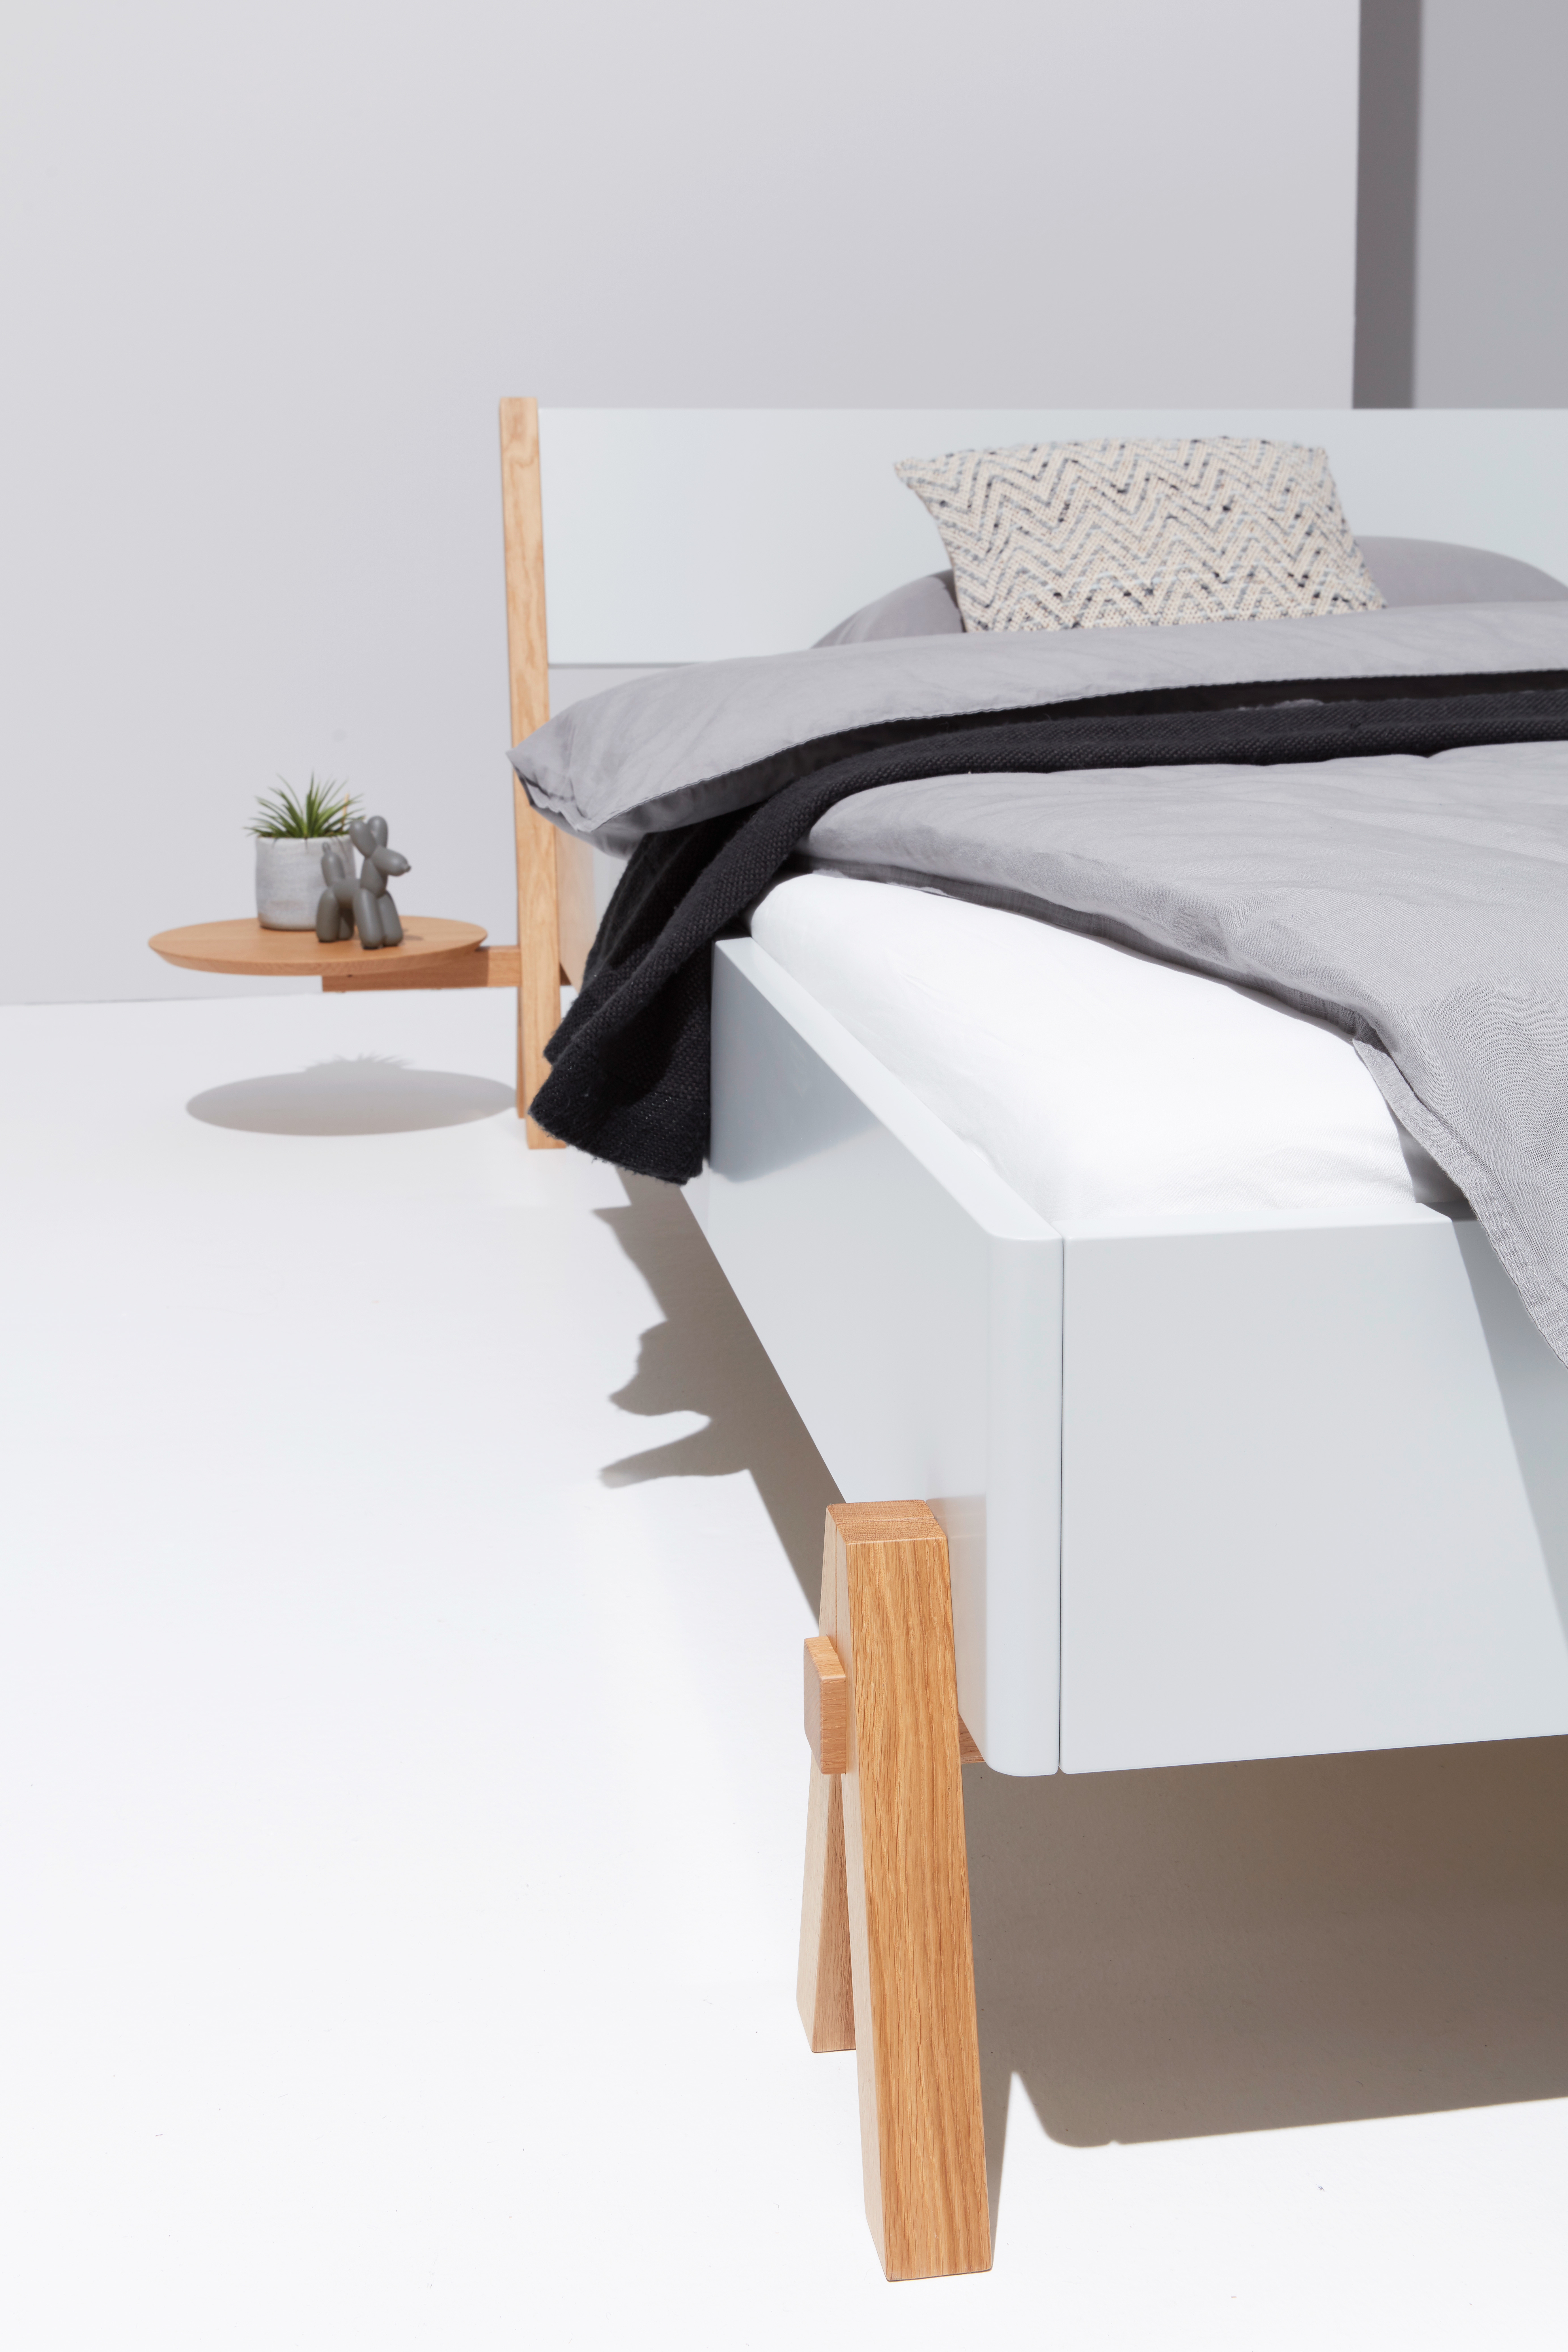 BOQ bed by Müller small living | STYLEPARK